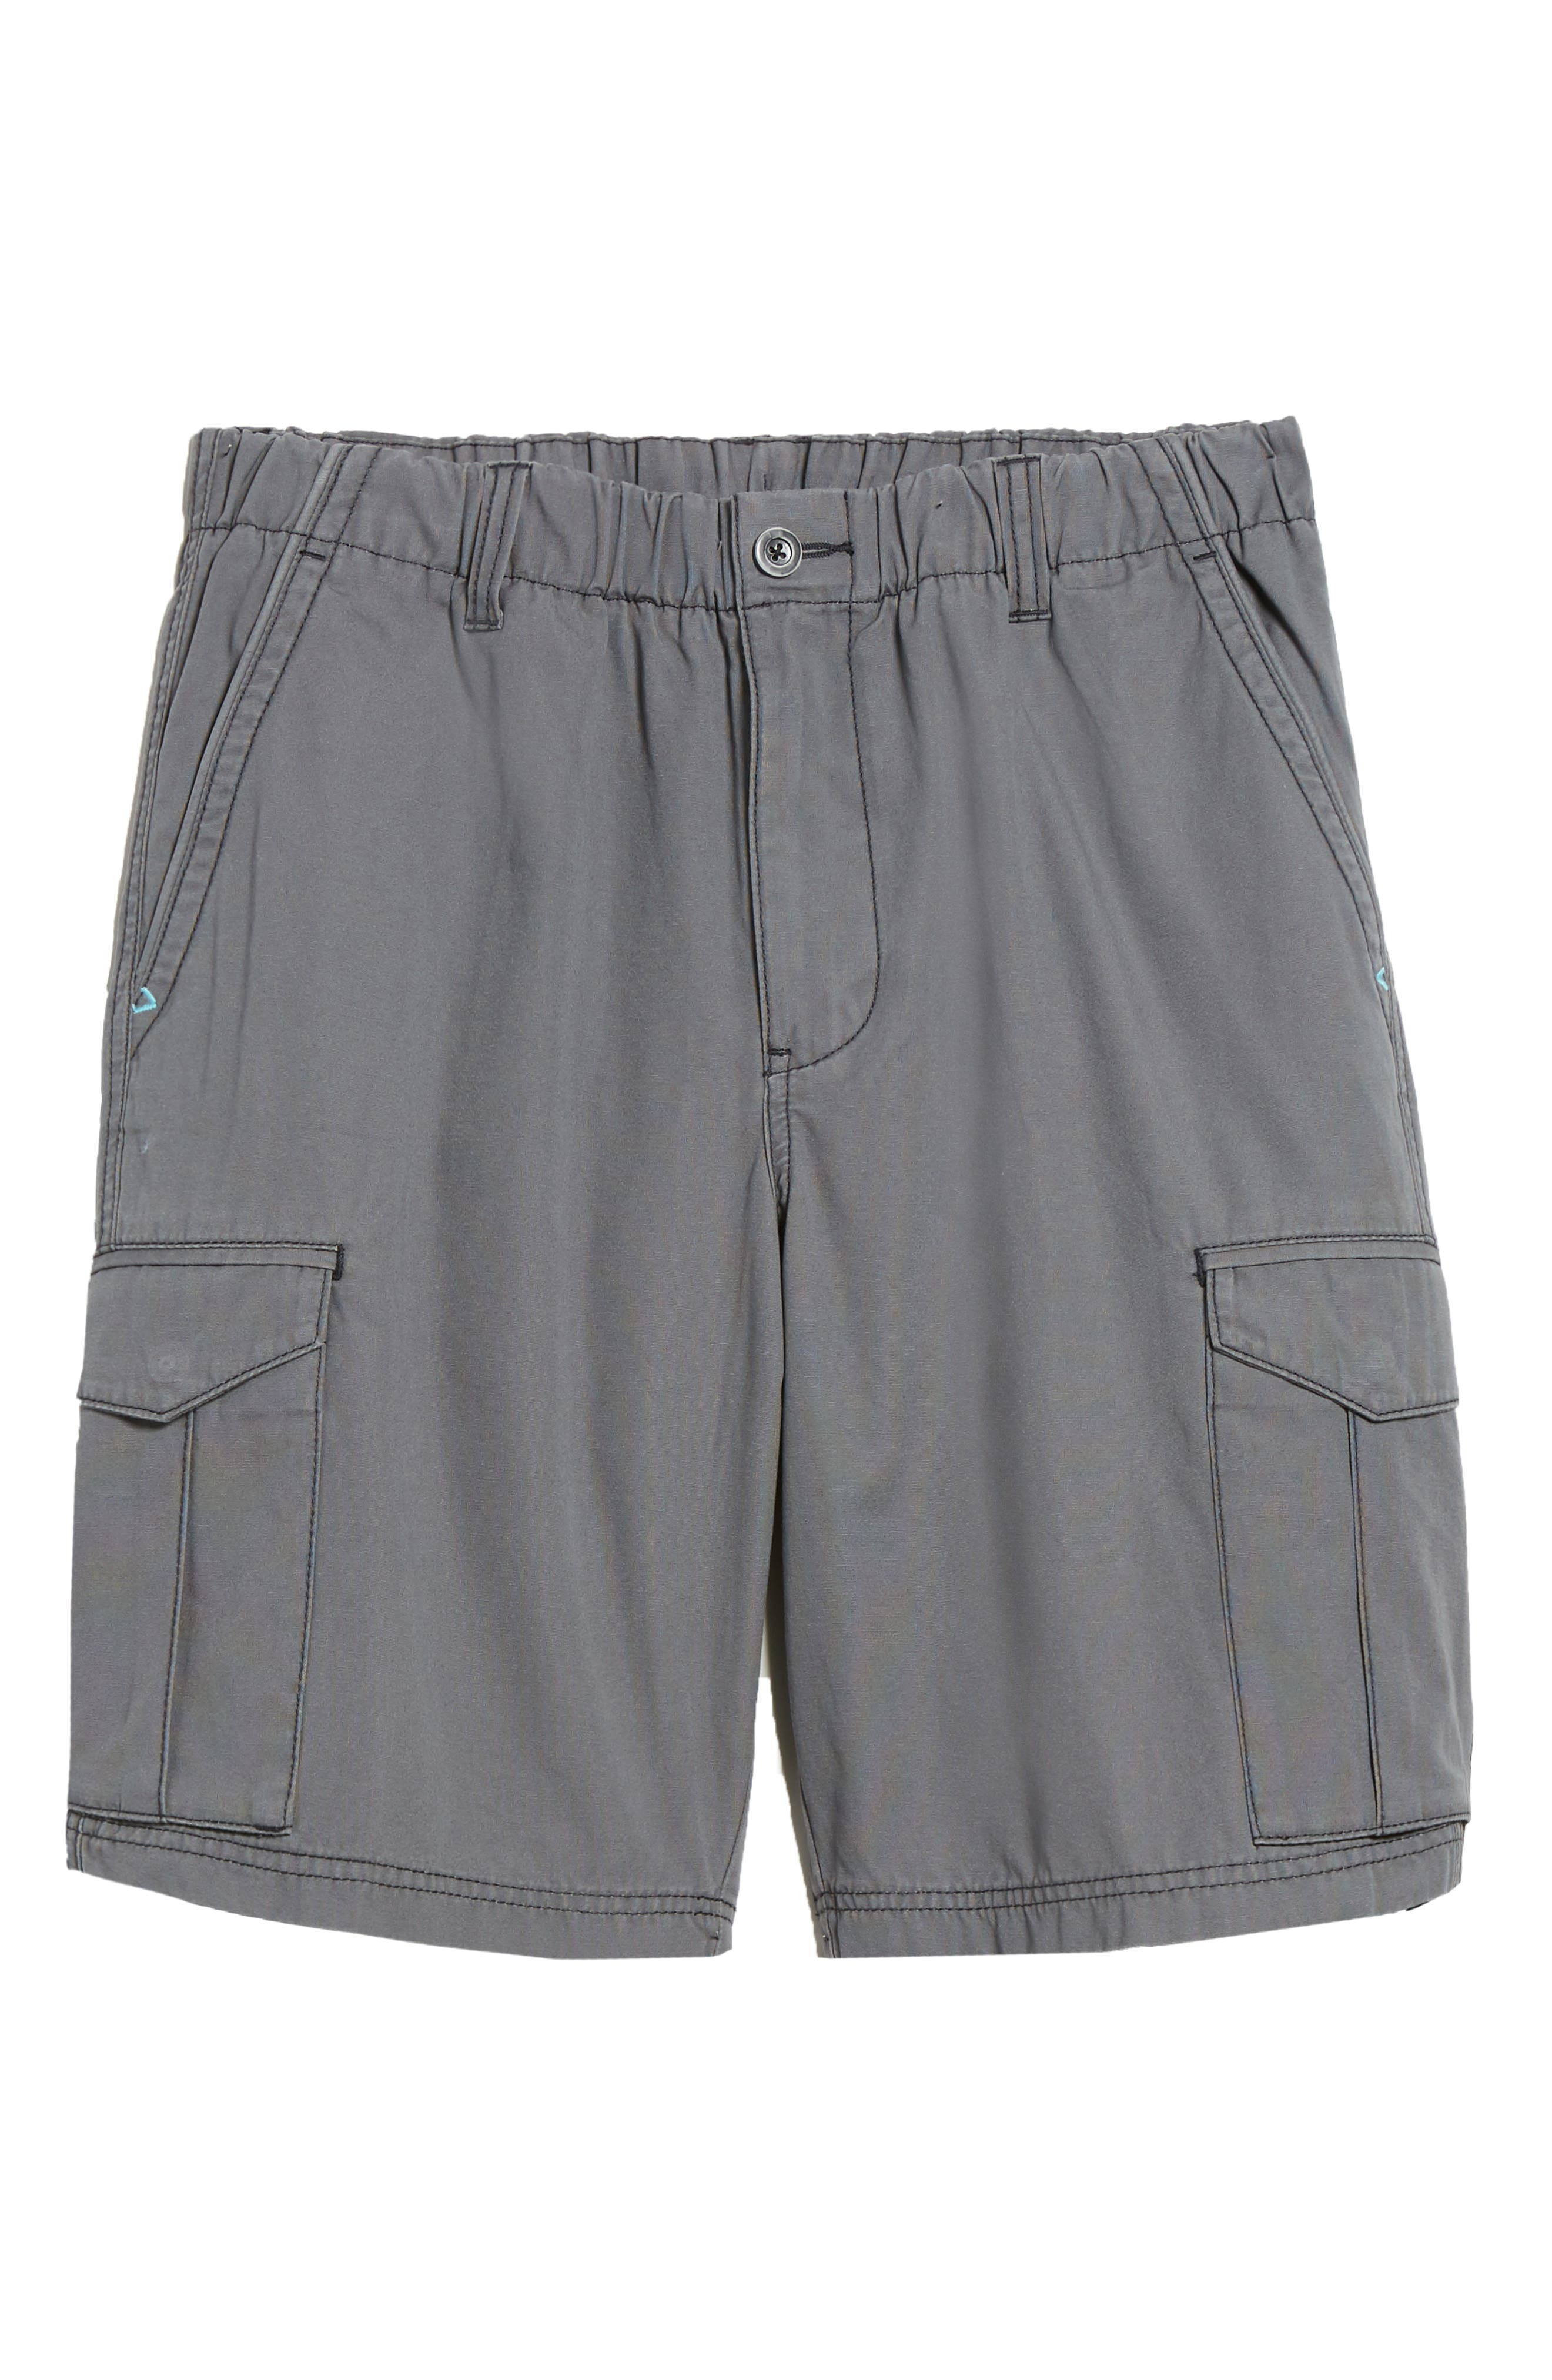 Island Survivalist Cargo Shorts,                             Alternate thumbnail 6, color,                             Fog Grey